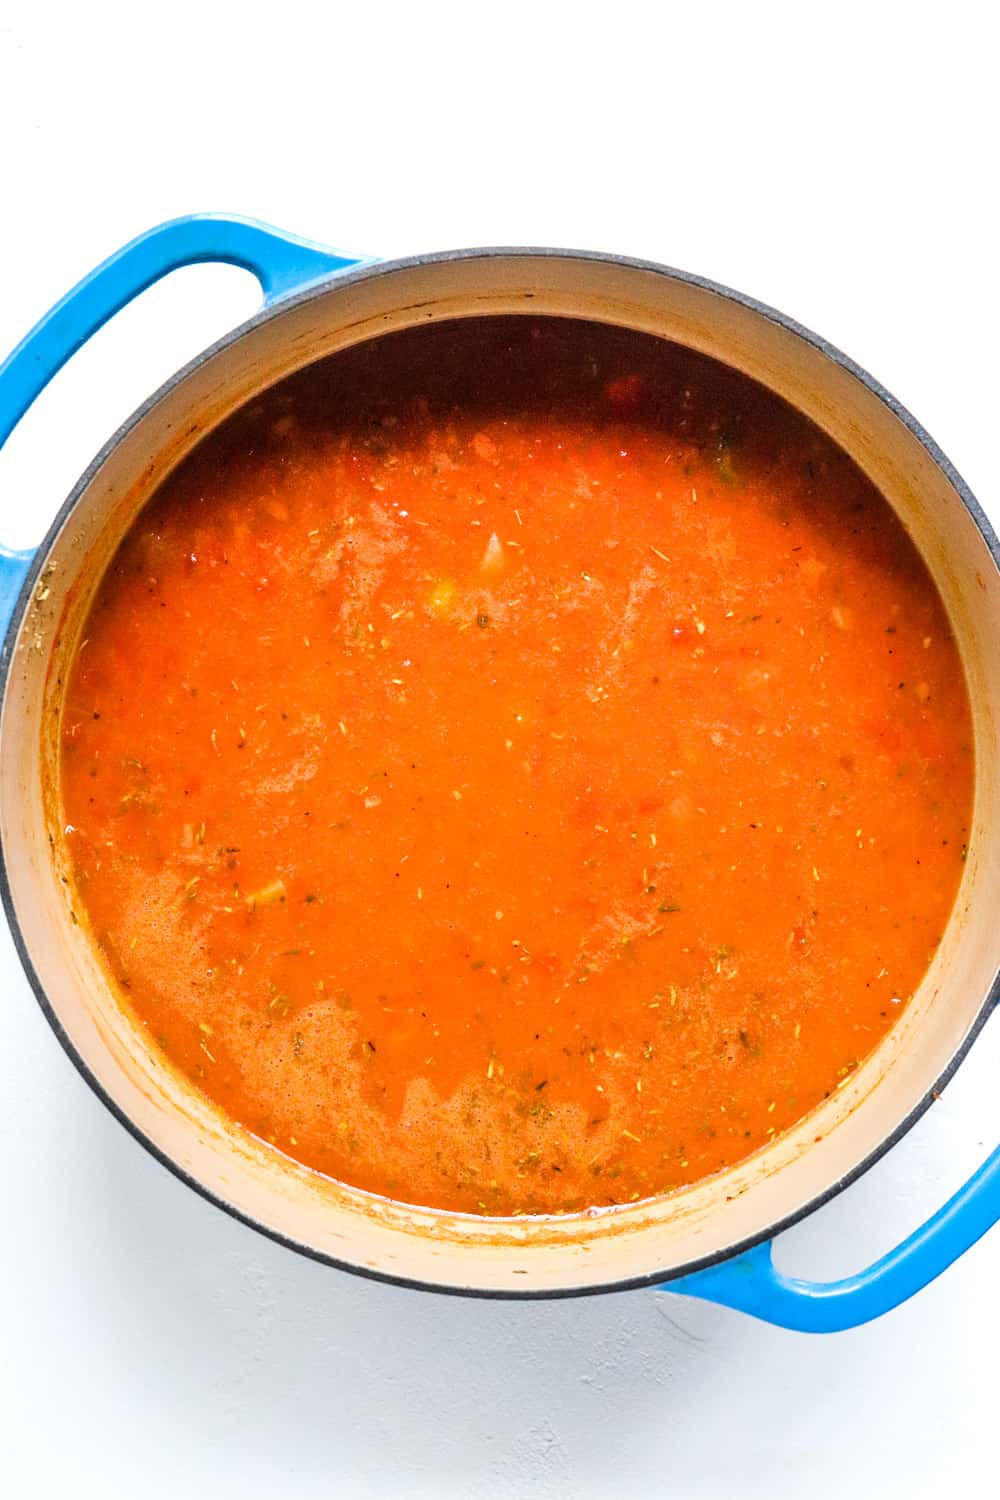 large blue pot filled with tomato soup